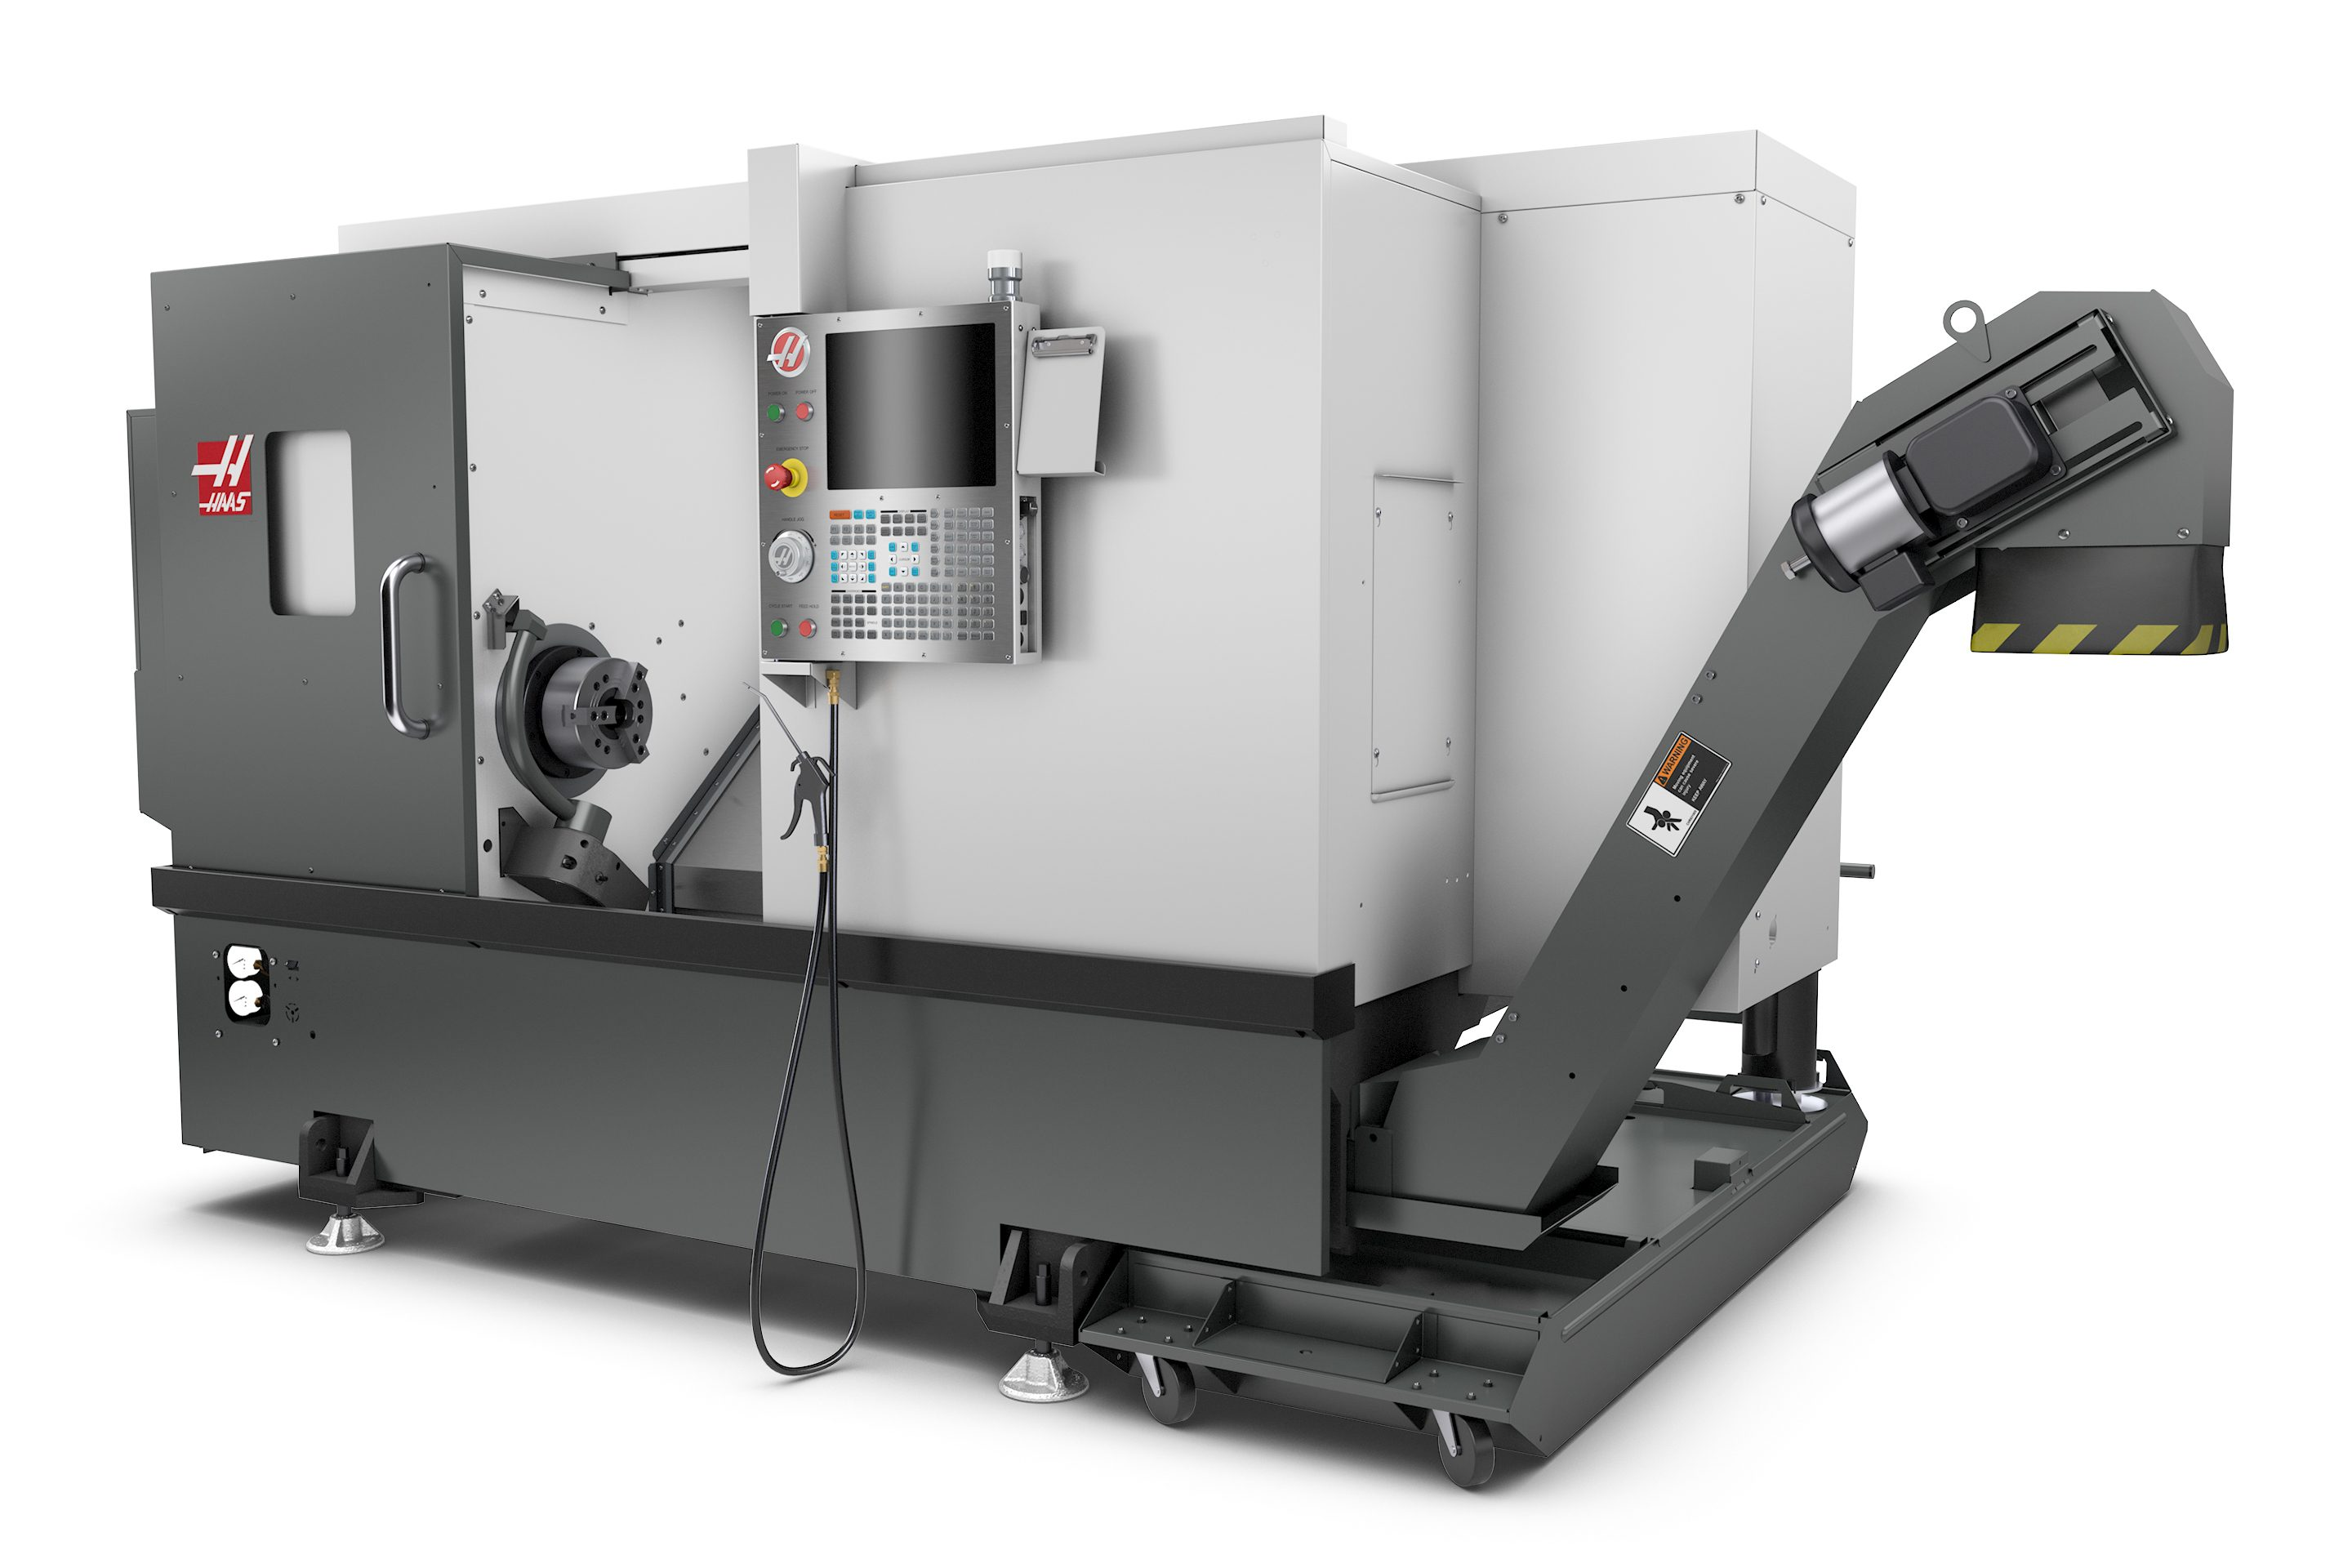 St 20y 8 Chuck 10 Chuck Y Axis Turning Center High